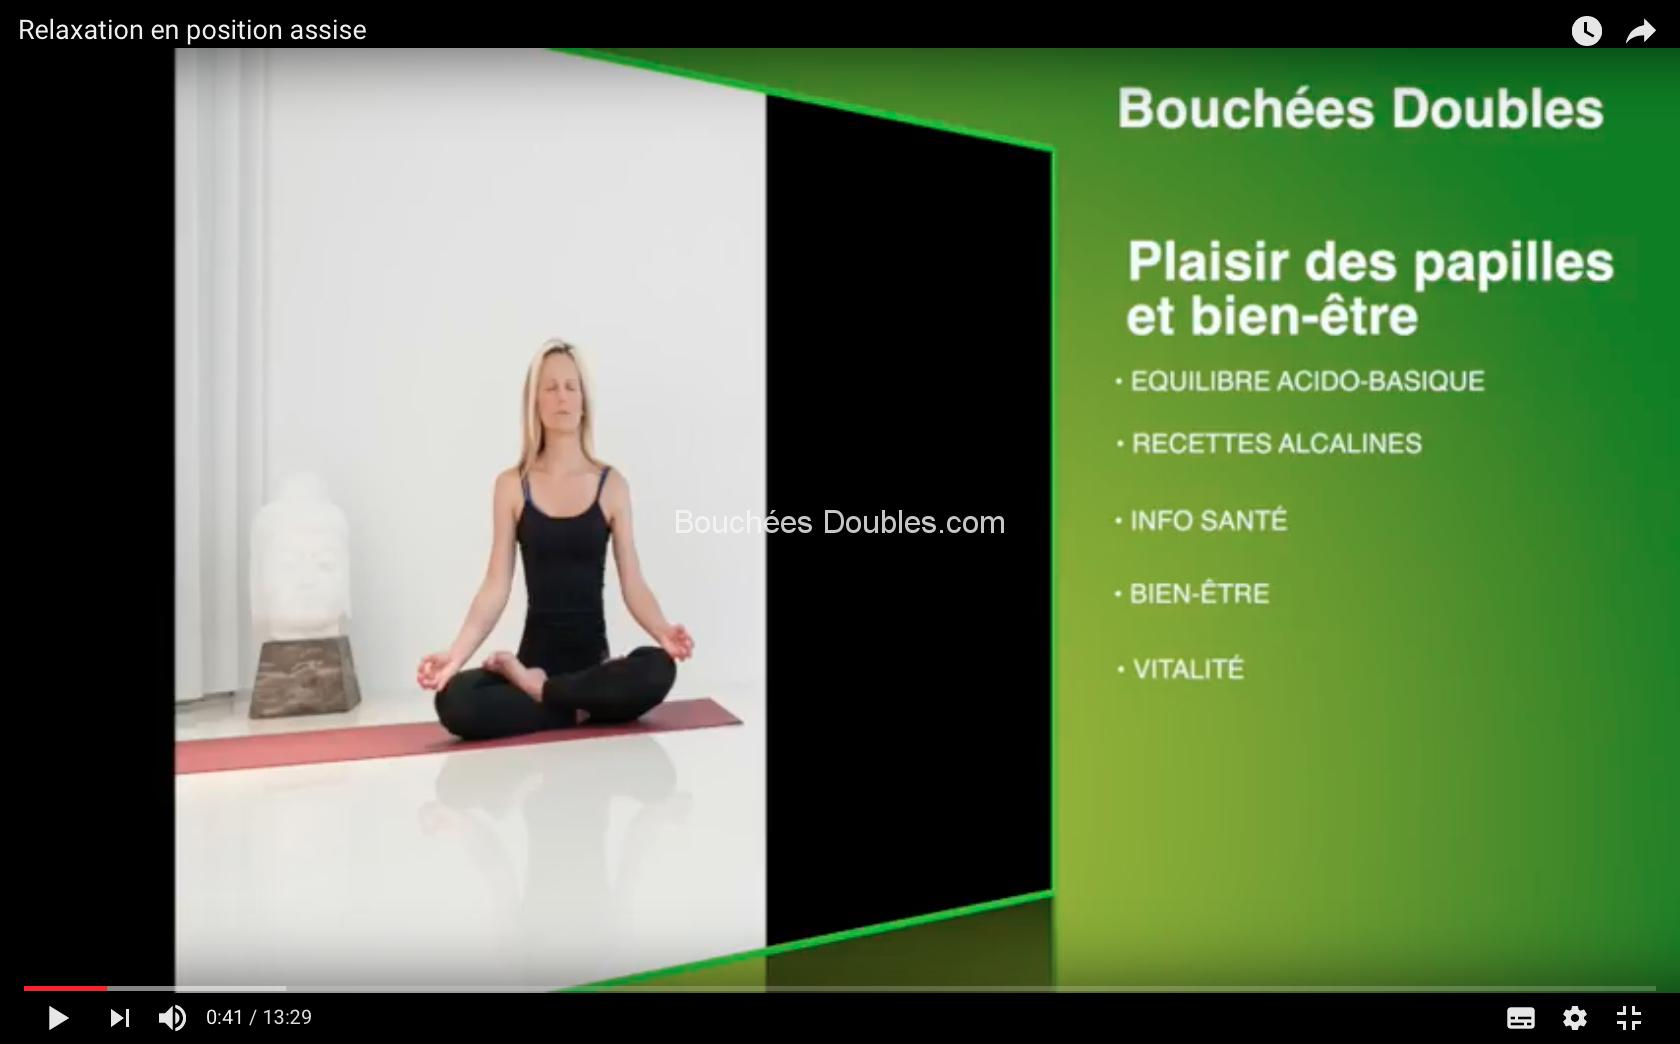 Respiration, relaxation, concentration, 2 position assise